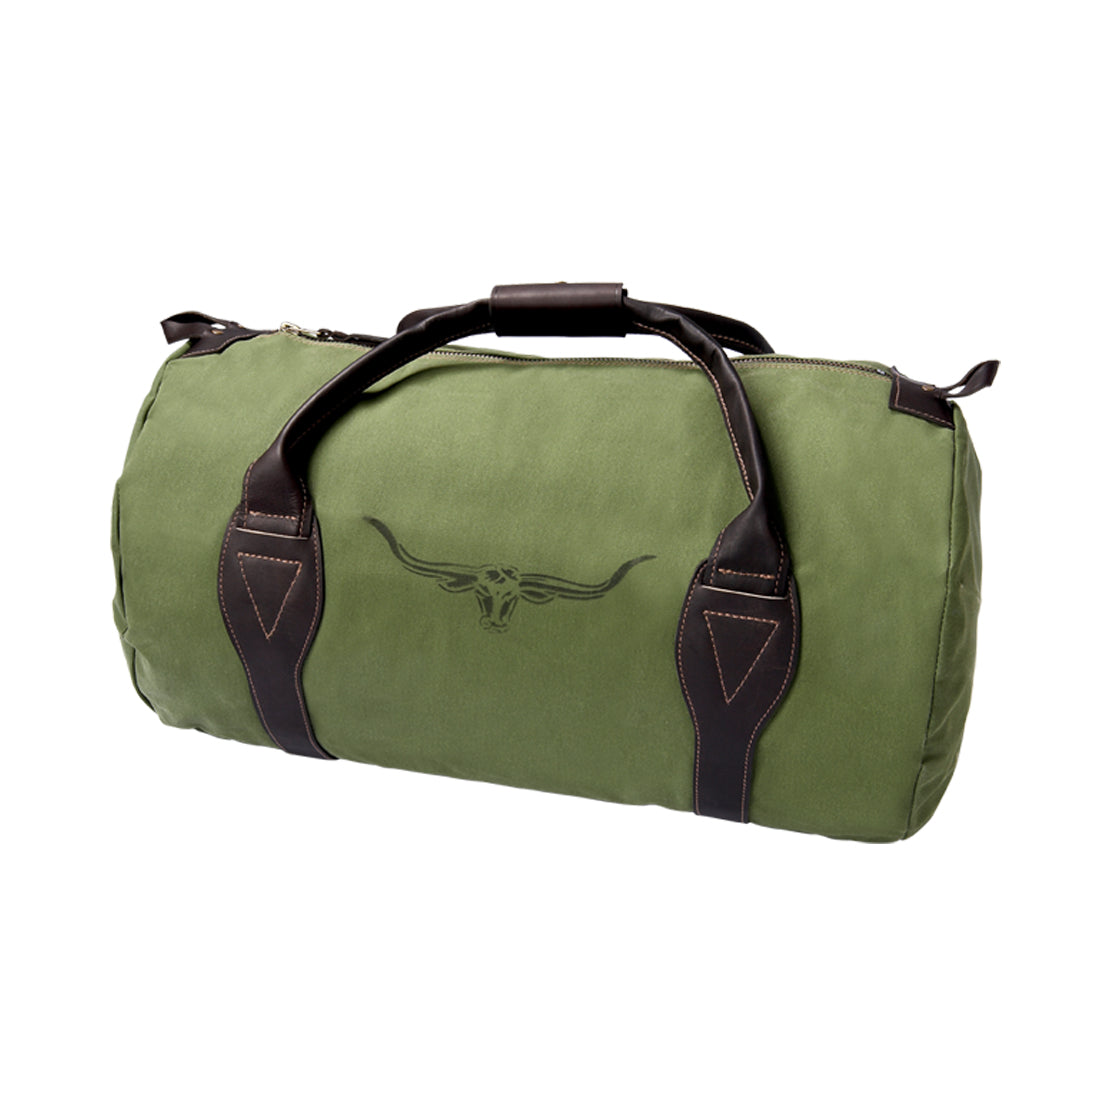 R.M.Williams Ute Bag Green